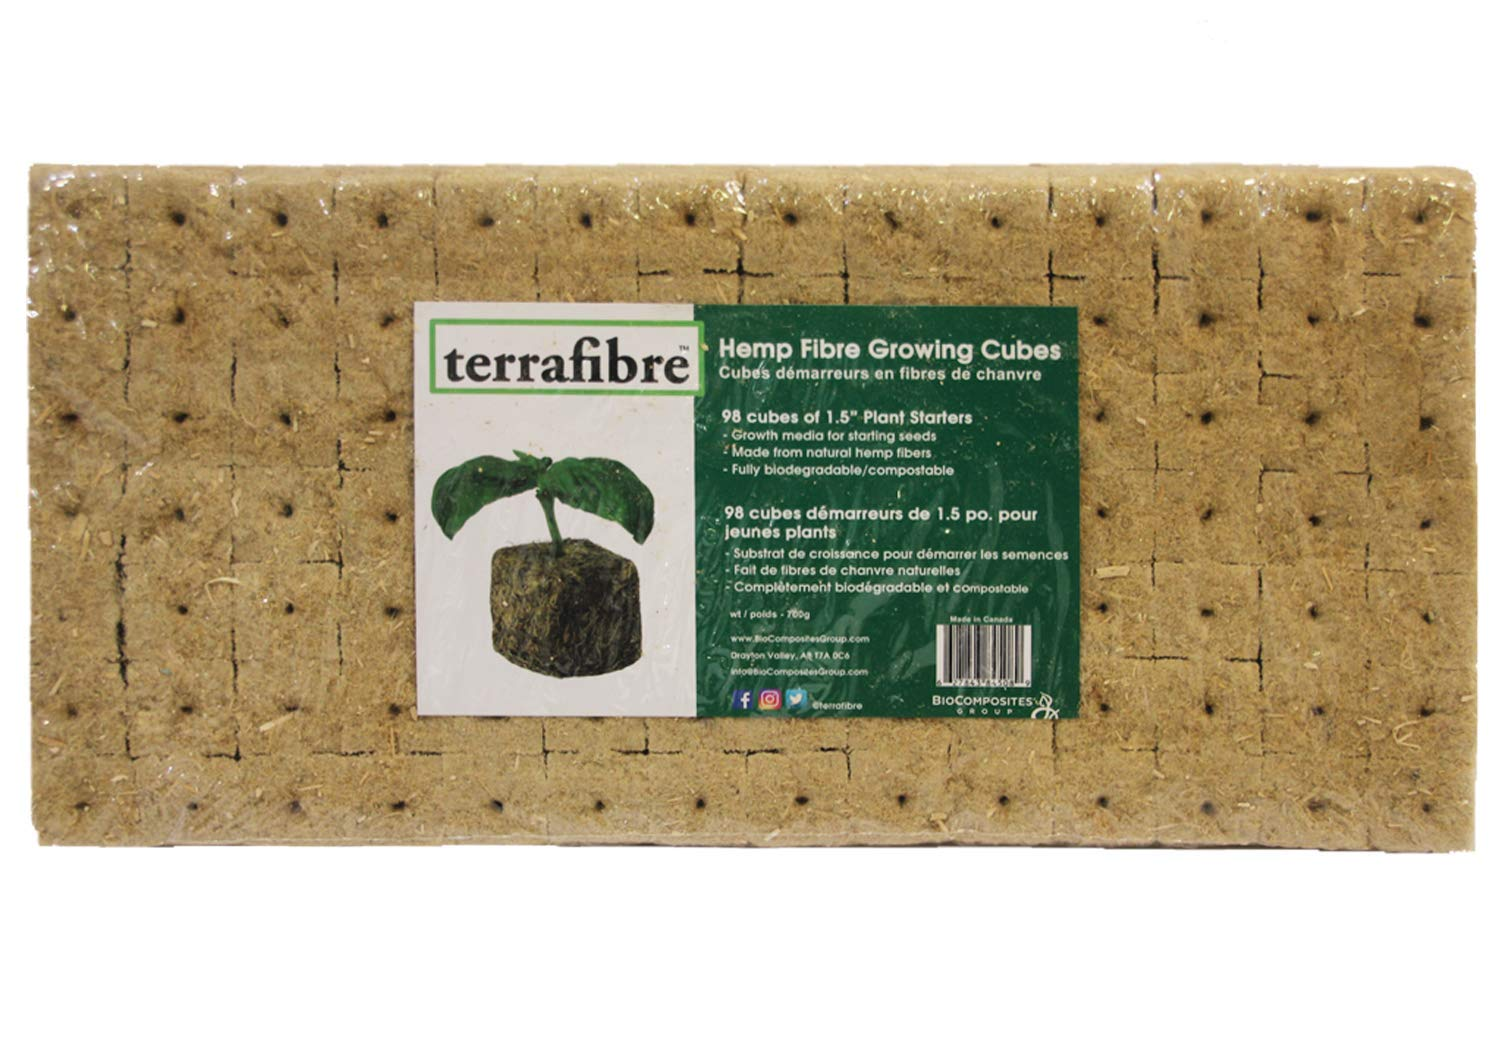 Hemp Fibre Growing Cubes (98, 1.5) 98 Pack of 1.5'' inch Cubes. Perfect Growth Media for Starting Seeds, Environmentally Friendly and Fully Biodegradable/Compostable by Terrafibre